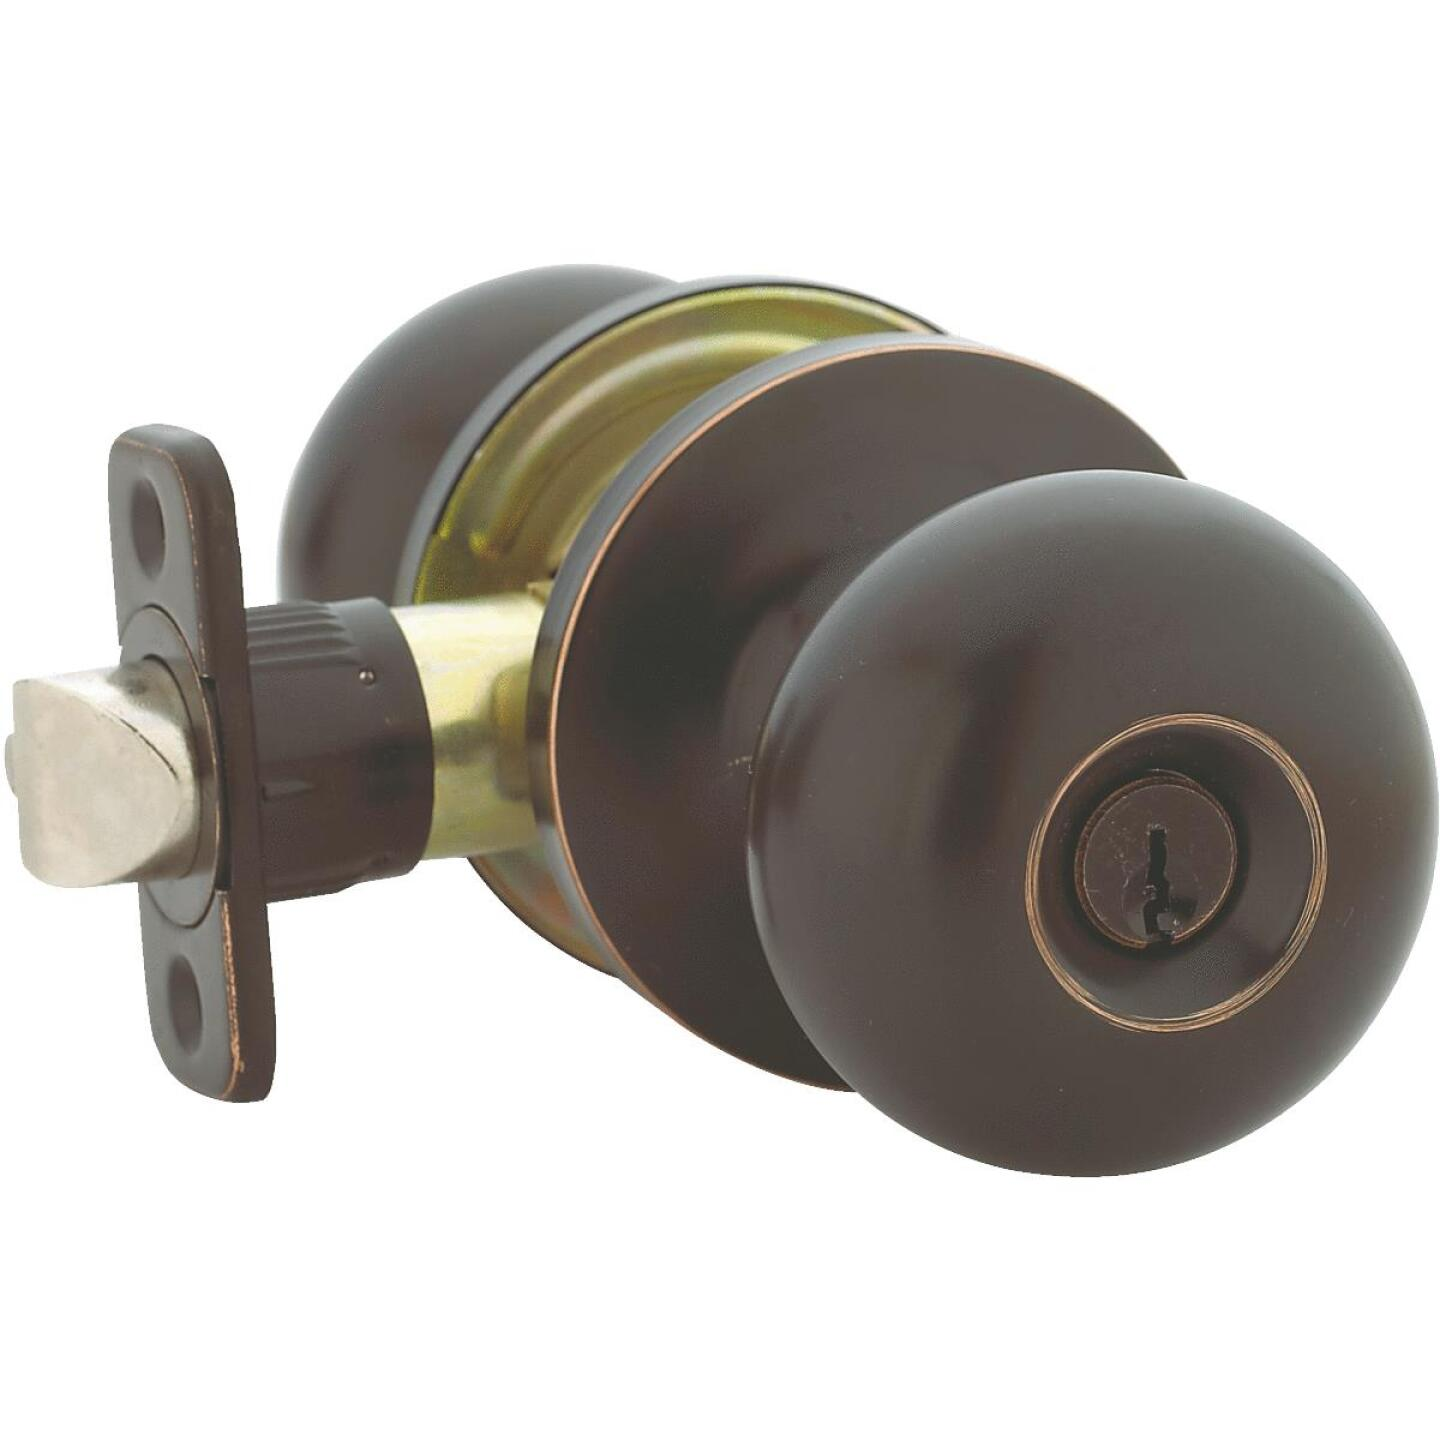 Steel Pro Oil Rubbed Bronze Entry Door Knob  Image 2